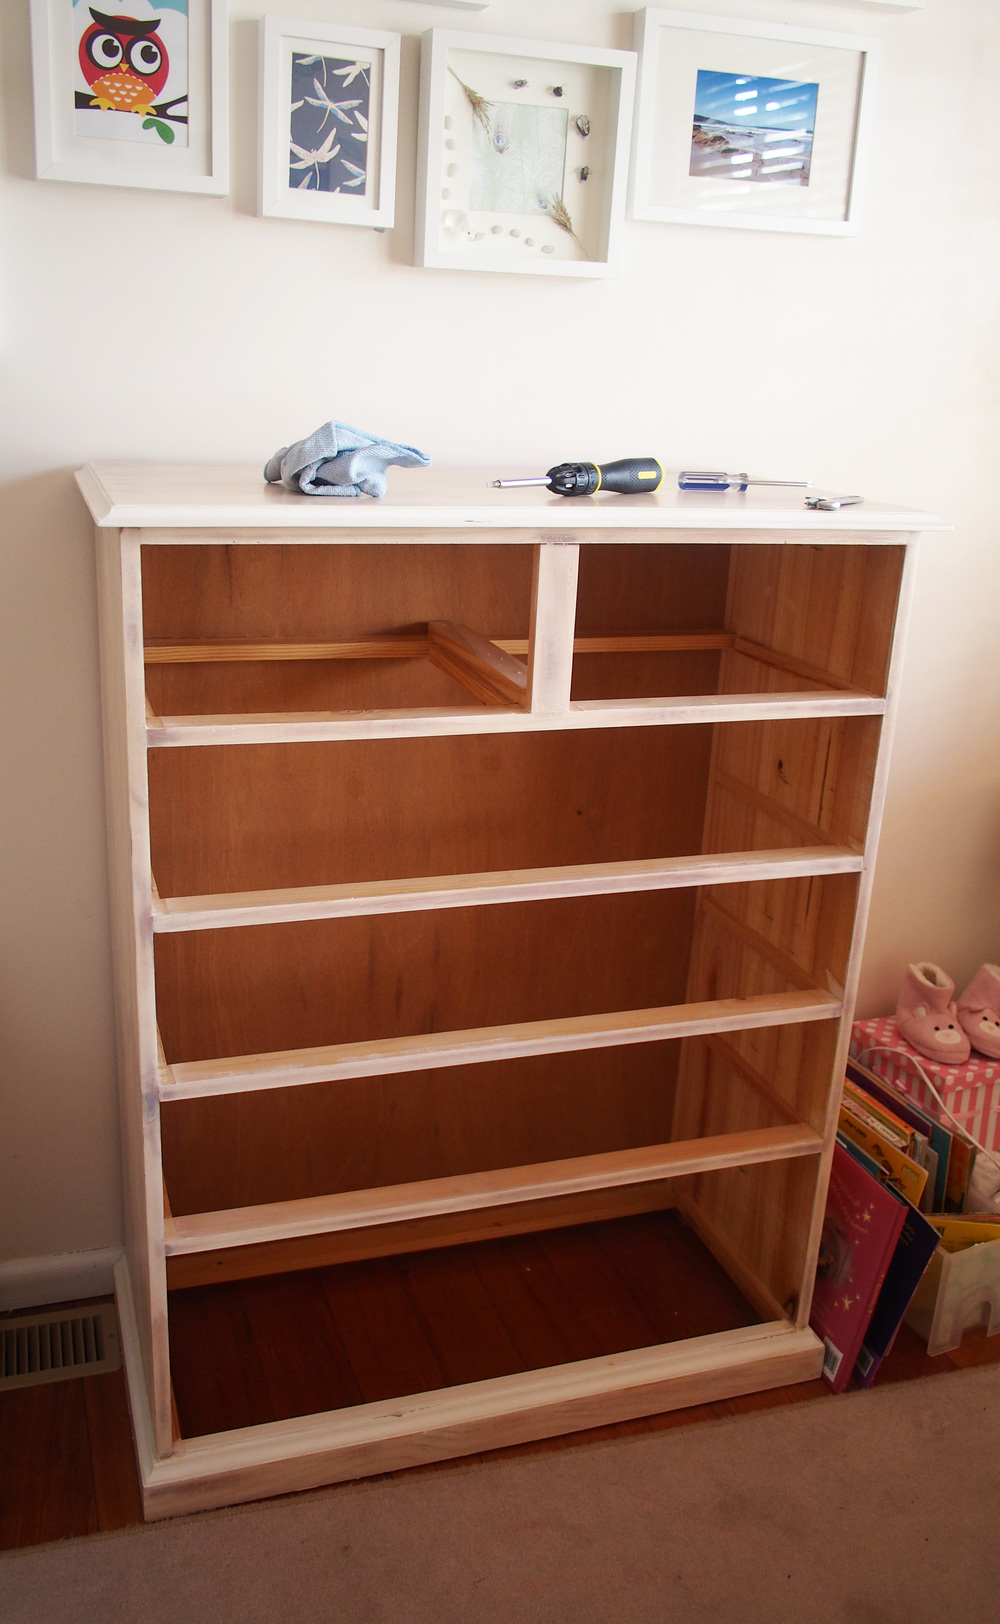 easy to move chest of drawers by removing drawers